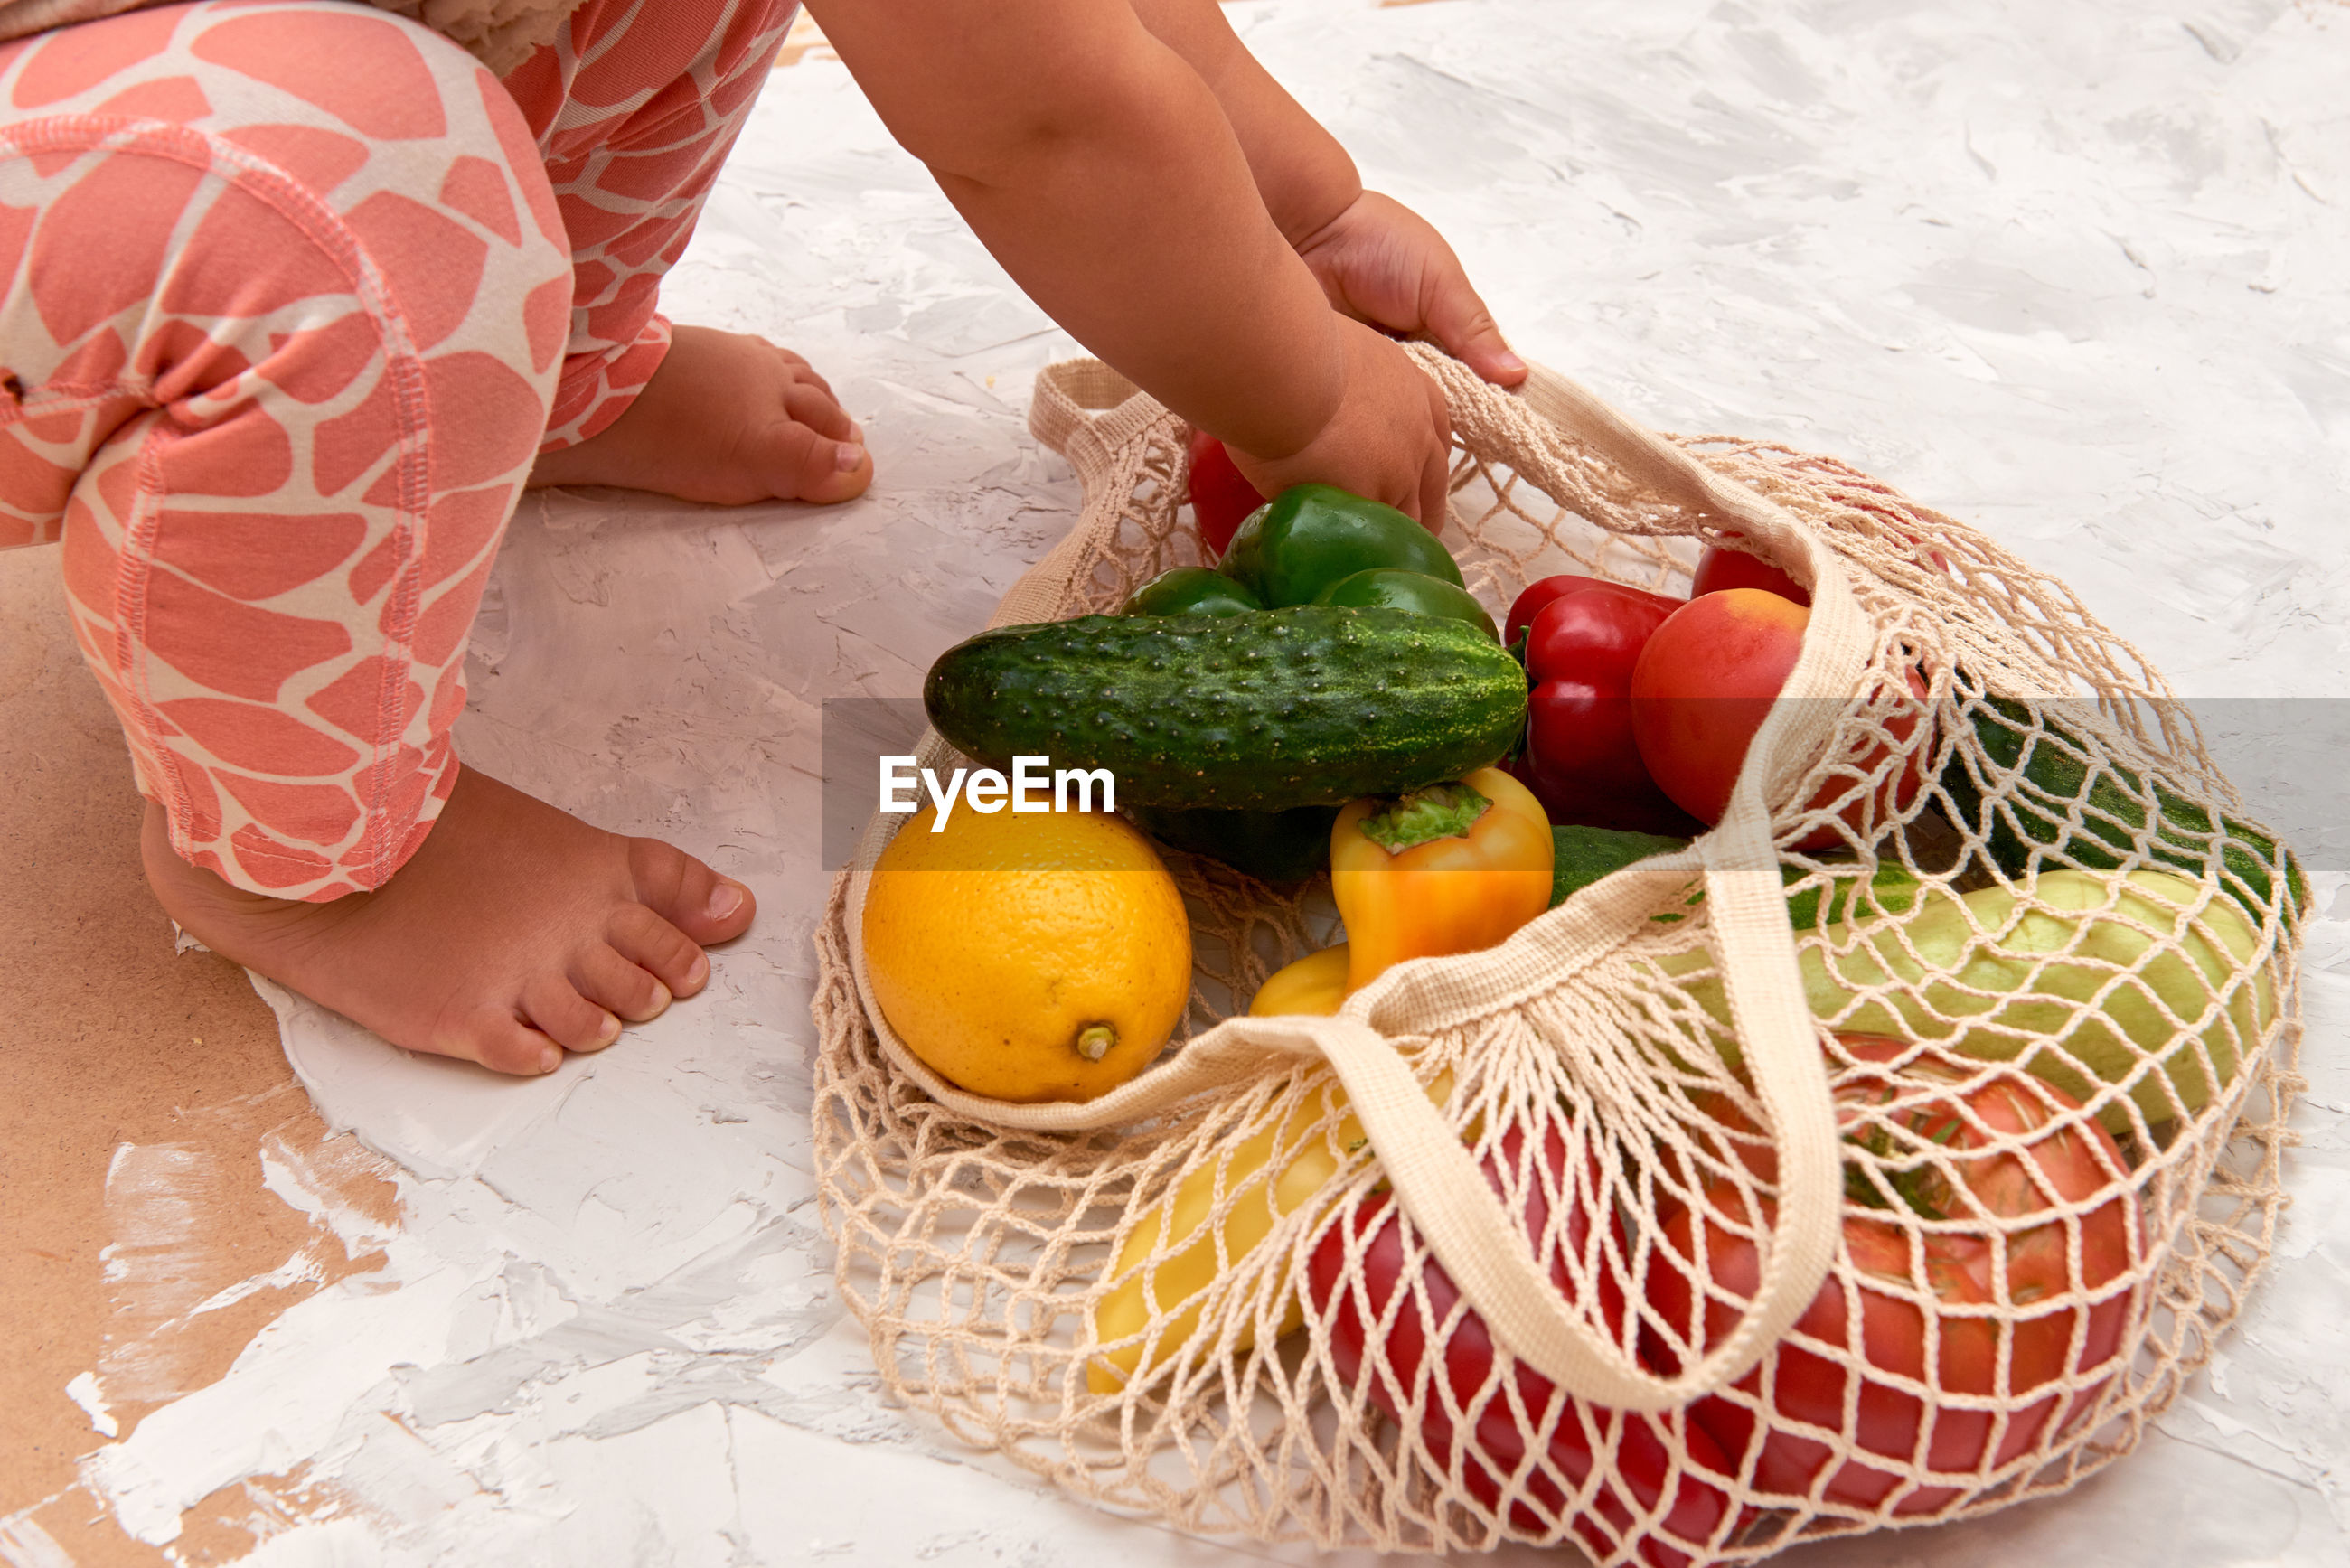 HIGH ANGLE VIEW OF WOMAN WITH VEGETABLES ON BASKET